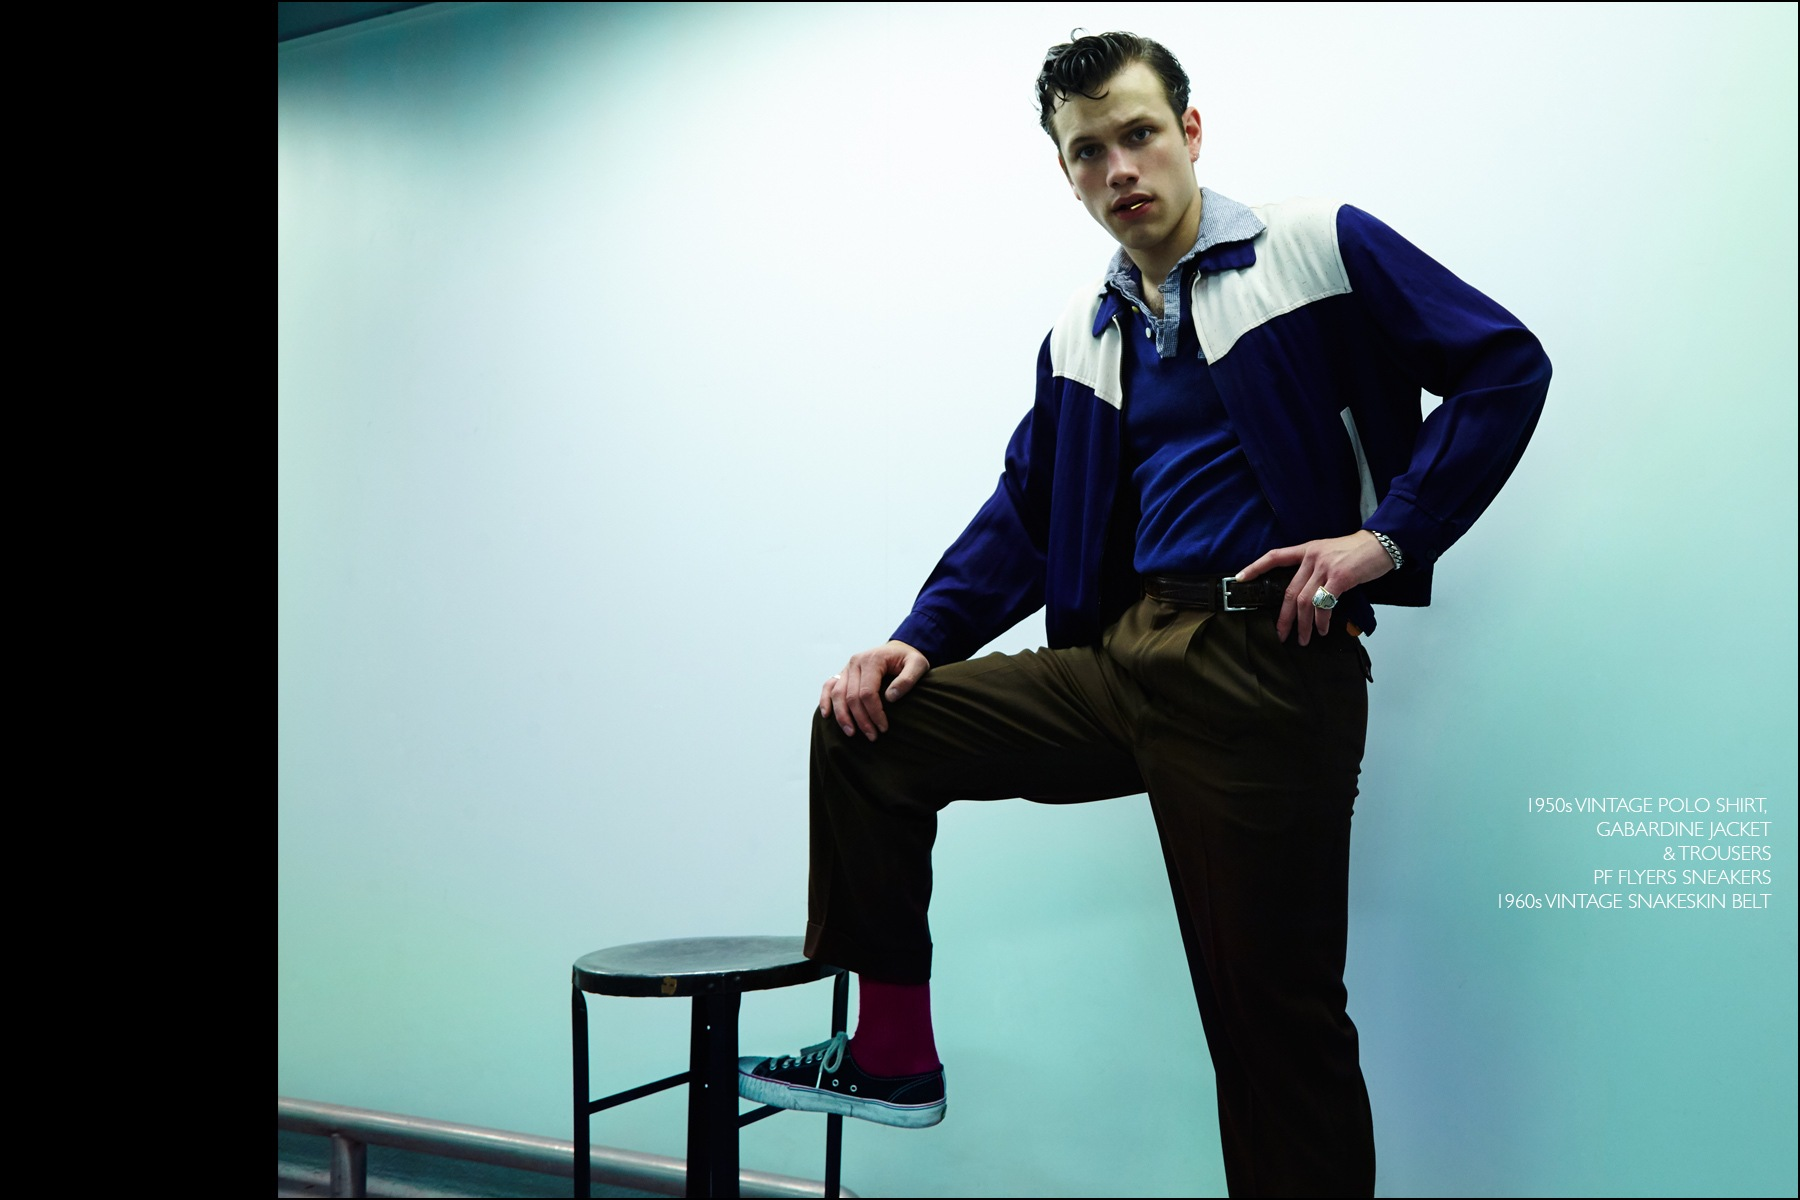 Rockabilly drummer Ben Heymann photographed in vintage clothing from NYC showroom Dated Vintage. Photography by Alexander Thompson for Ponyboy magazine NY.